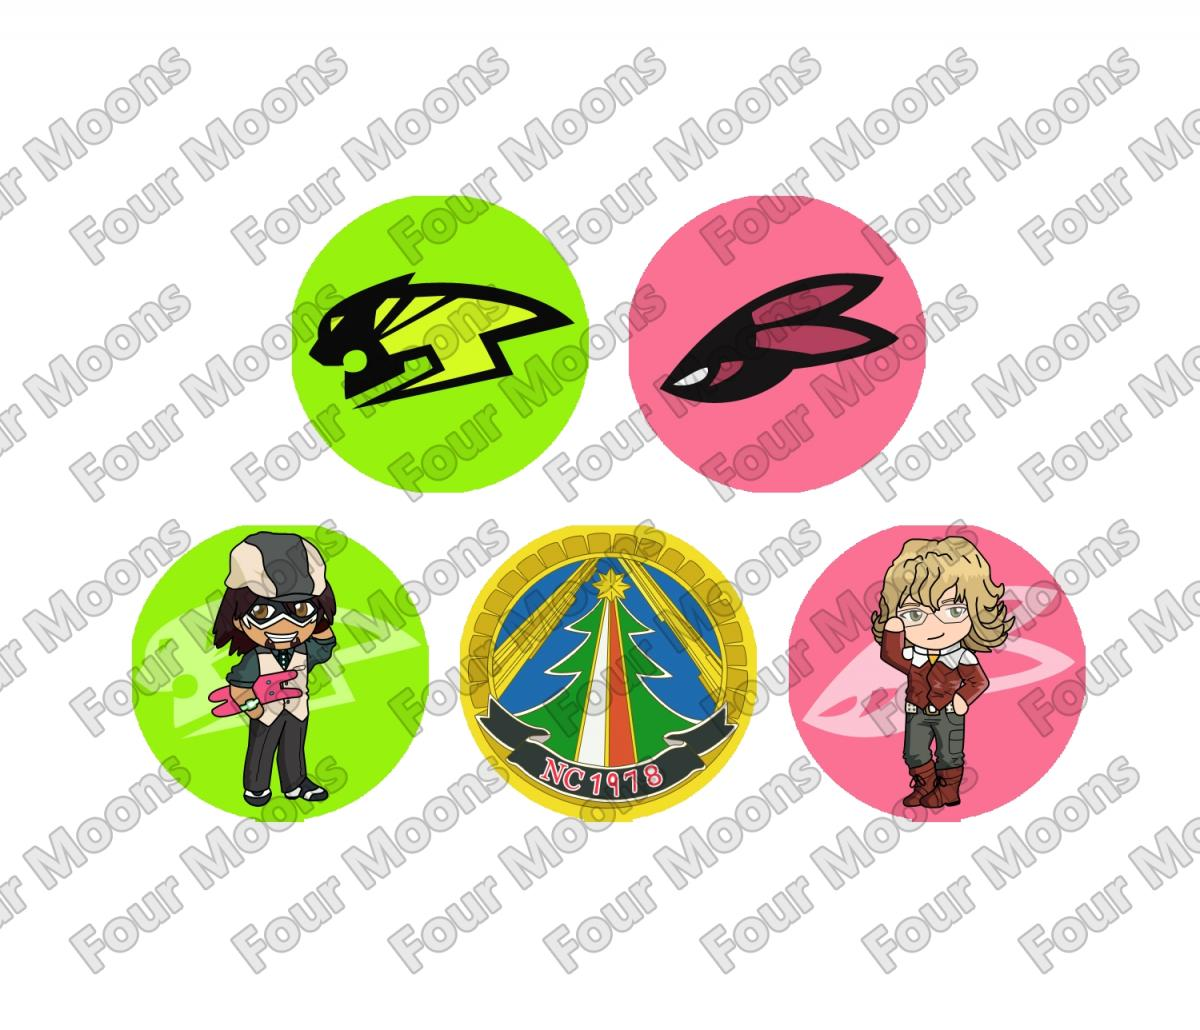 Tiger and Bunny Button Set (5)